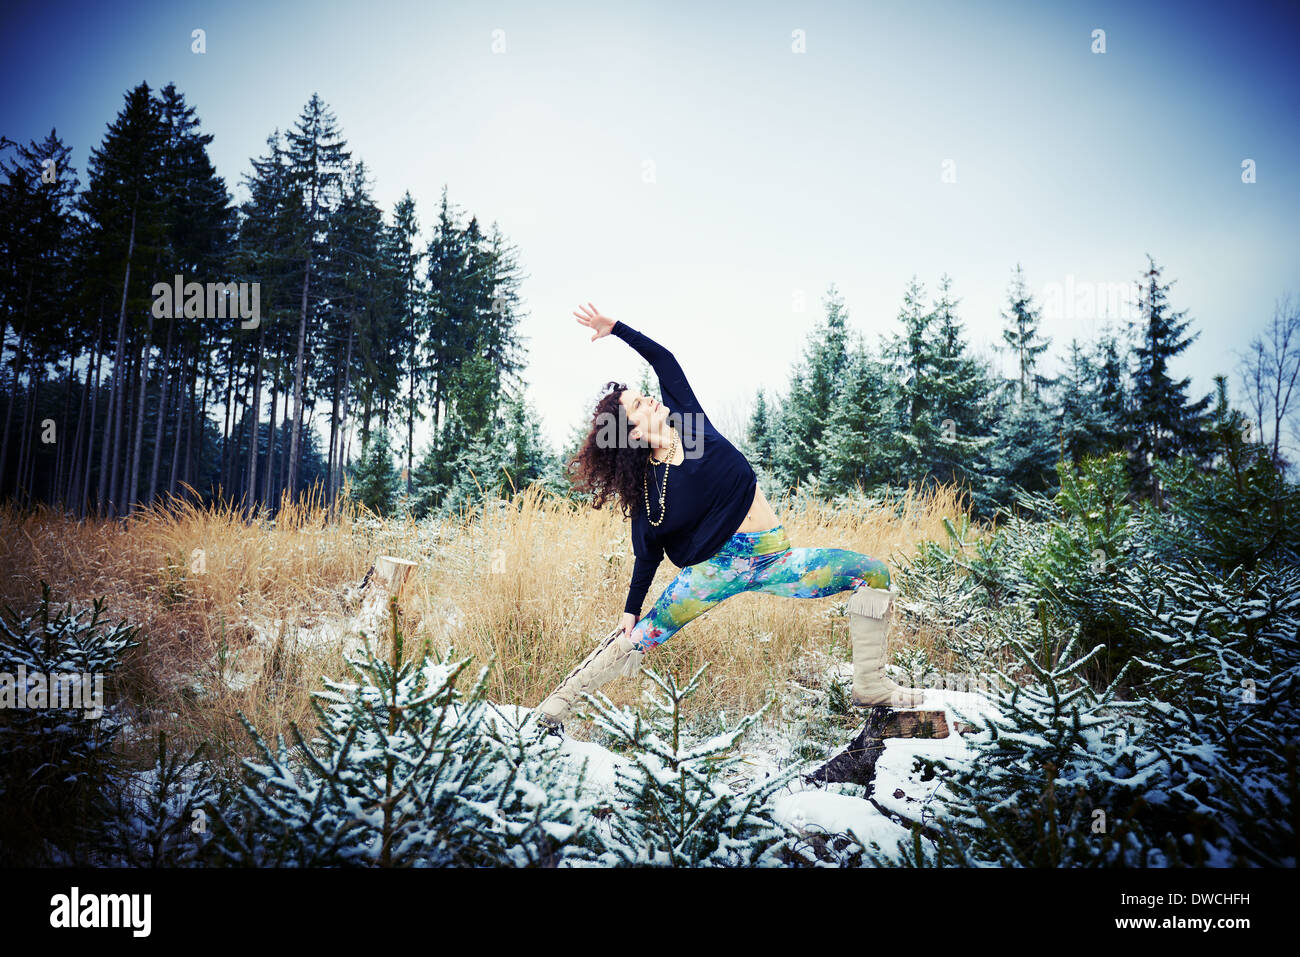 Mid adult woman practicing yoga in forest - Stock Image